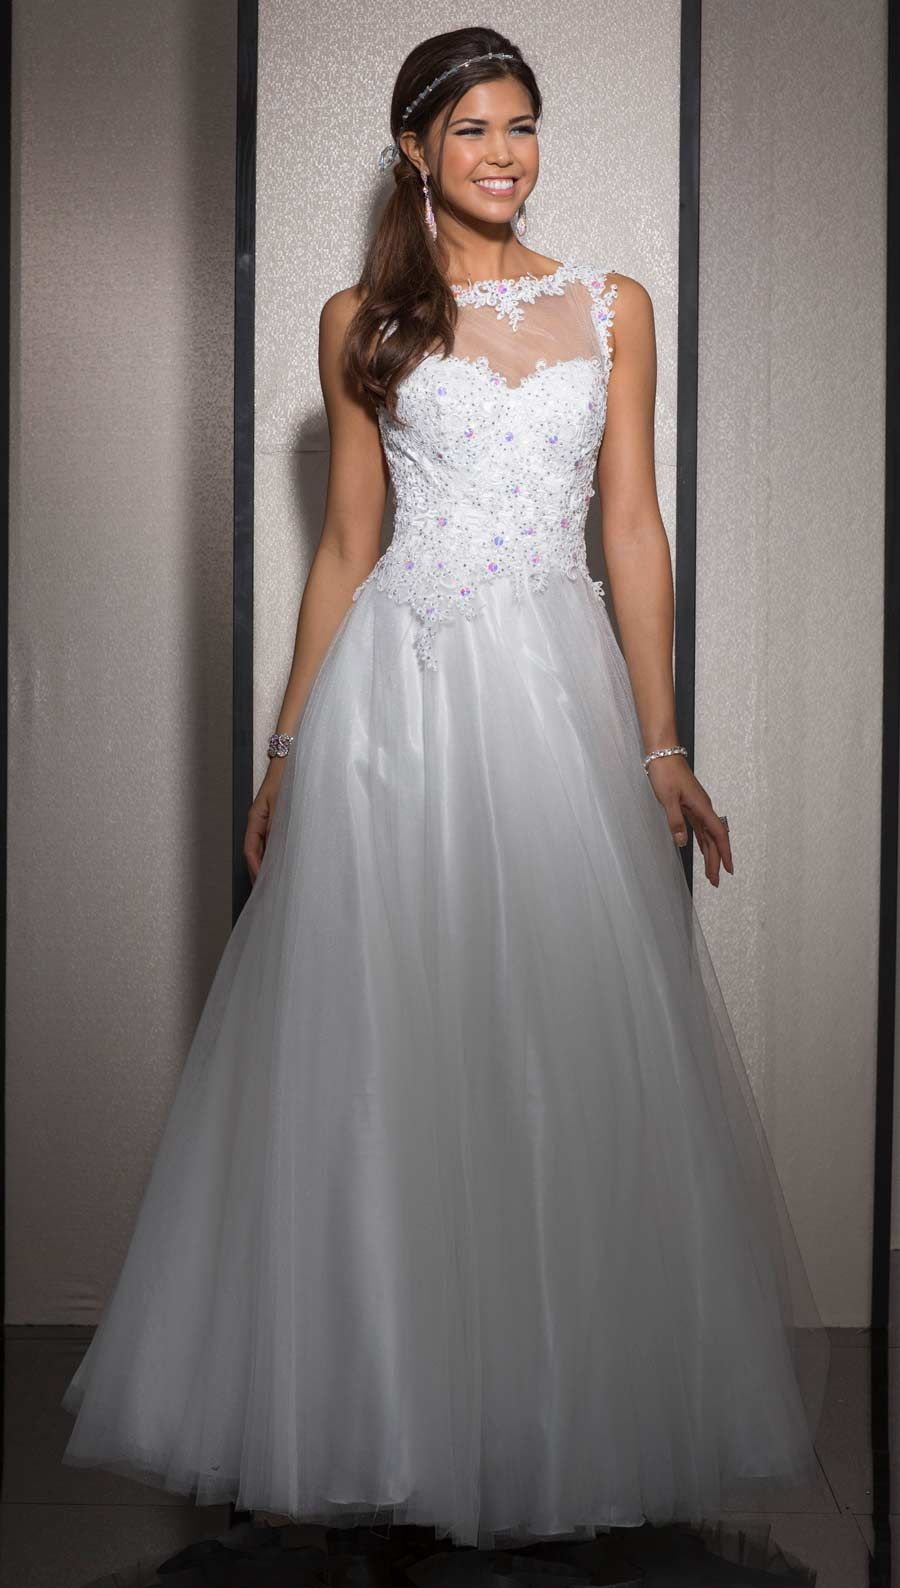 Clarisse Ball Gown 2505   Ball gowns, Gowns and Prom